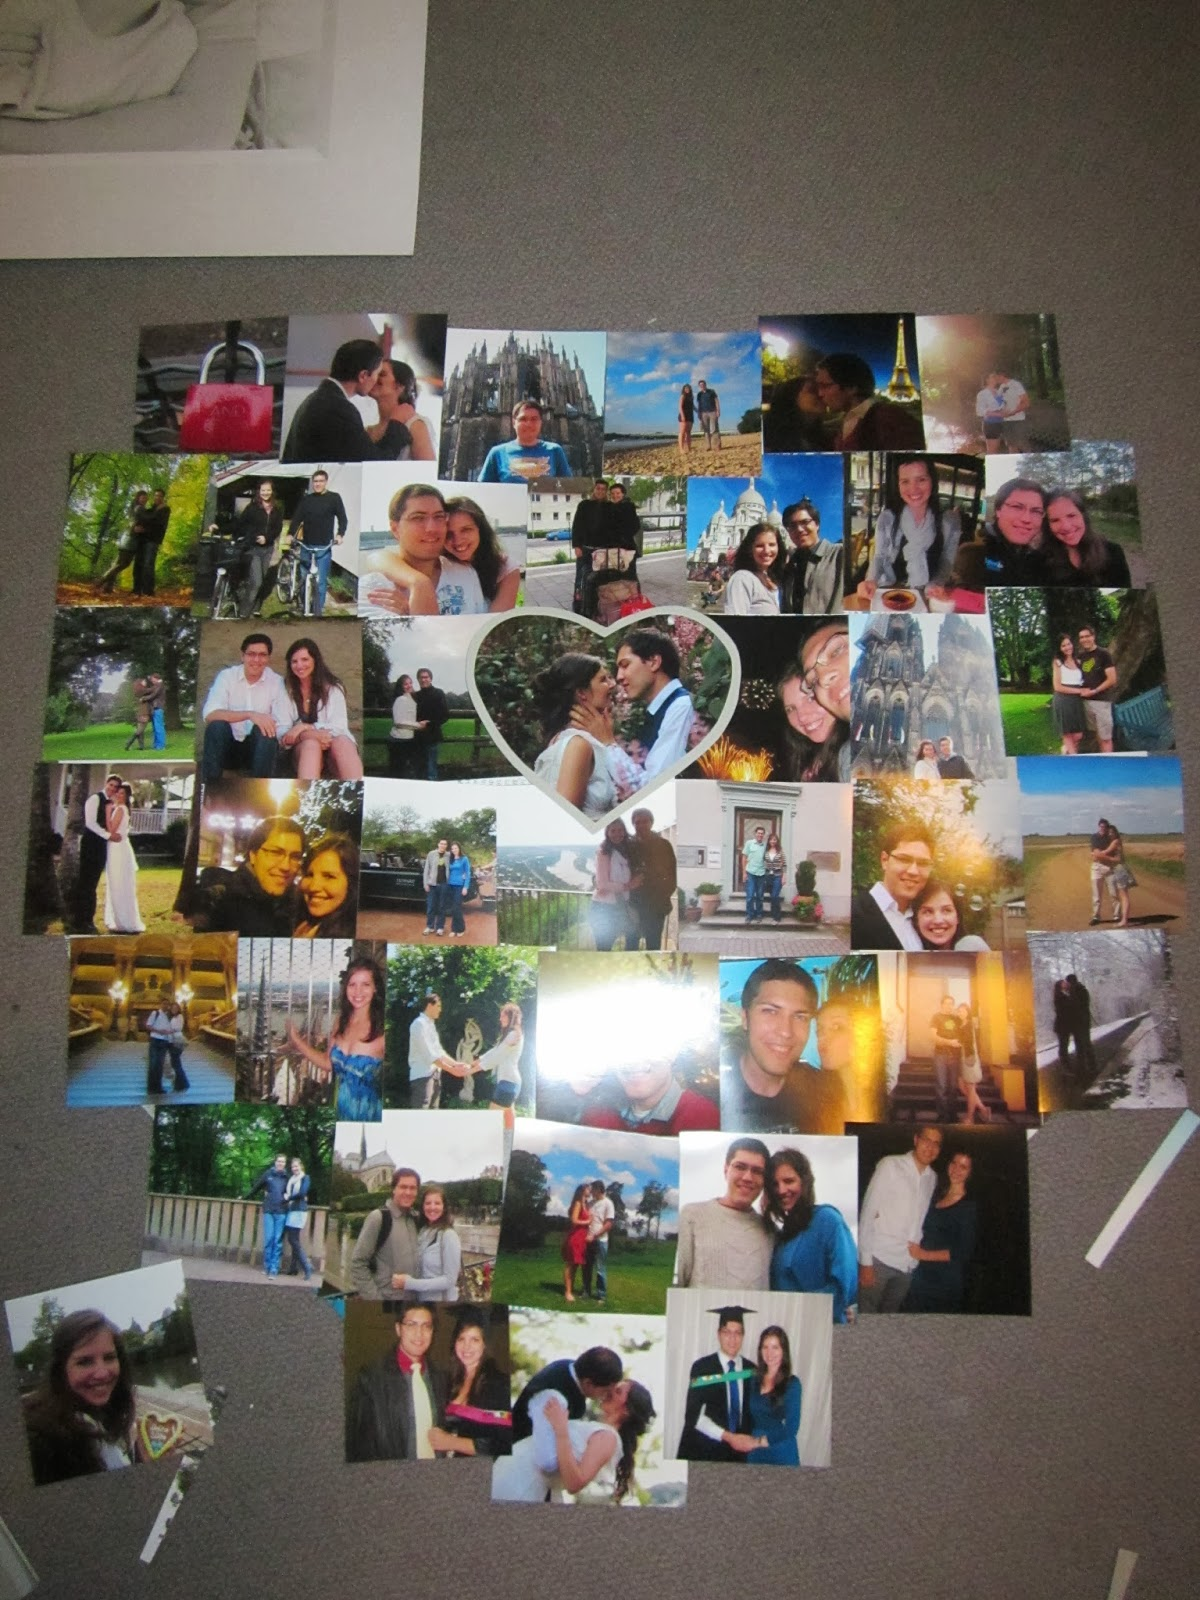 DIY wall hang picture